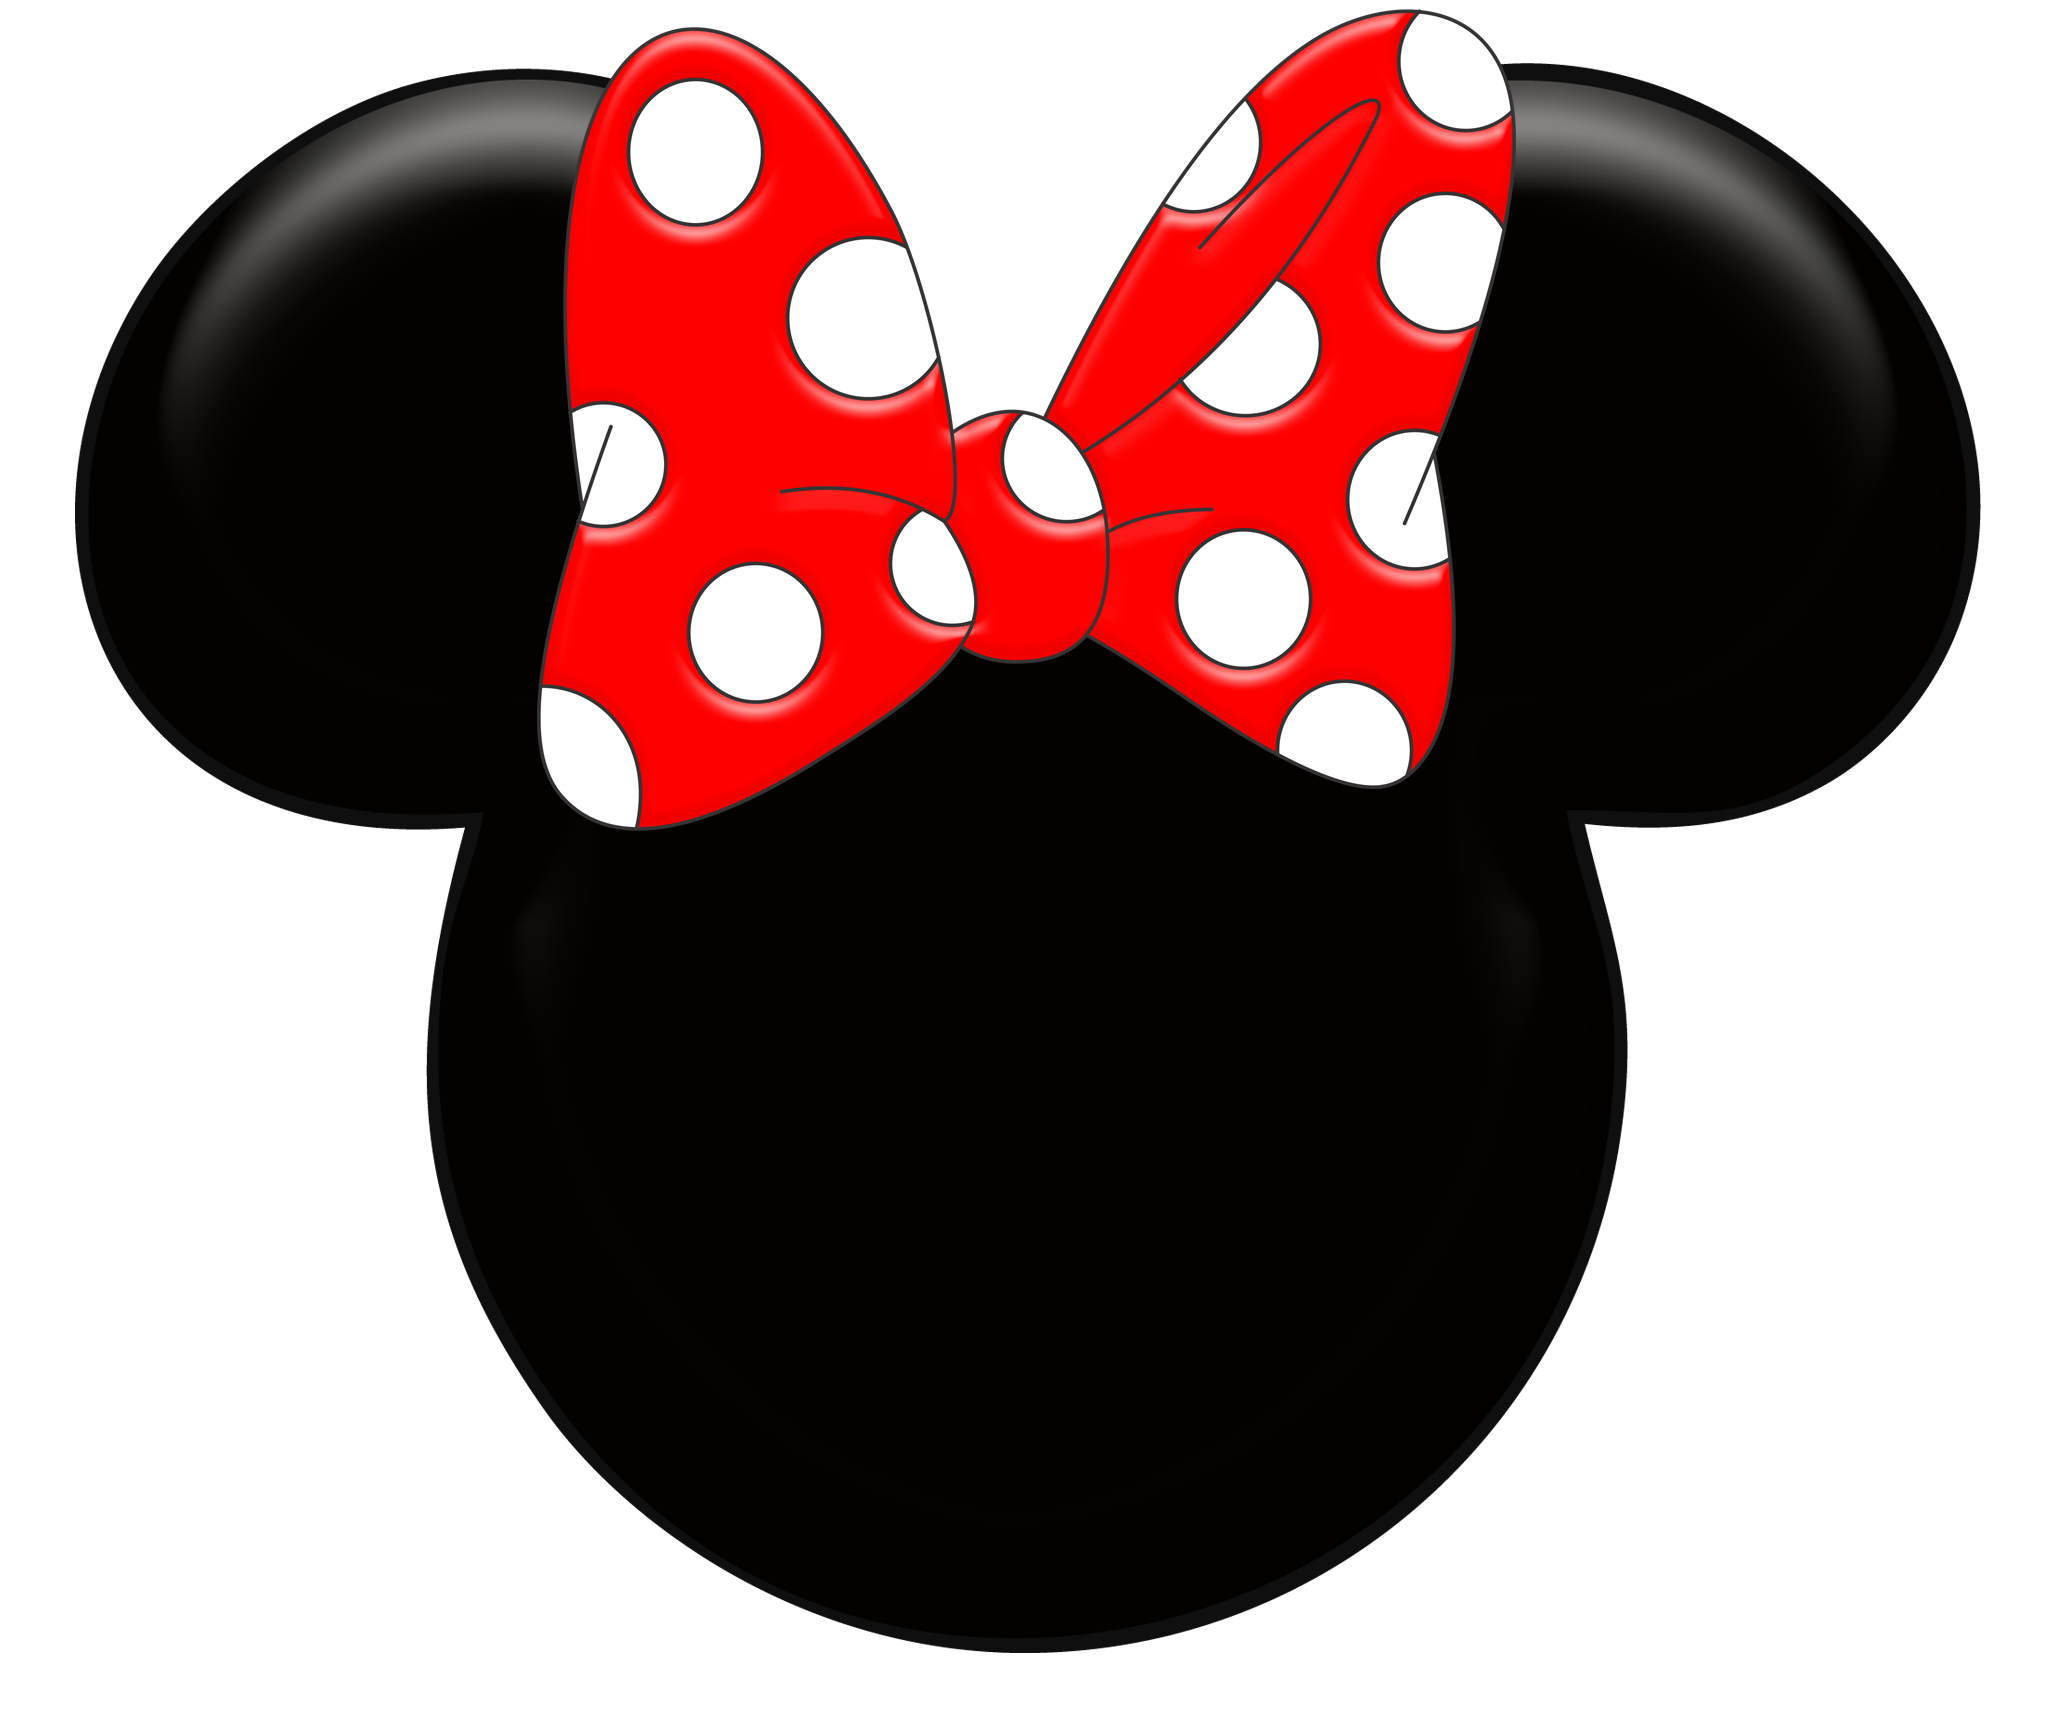 102 minnie mouse.